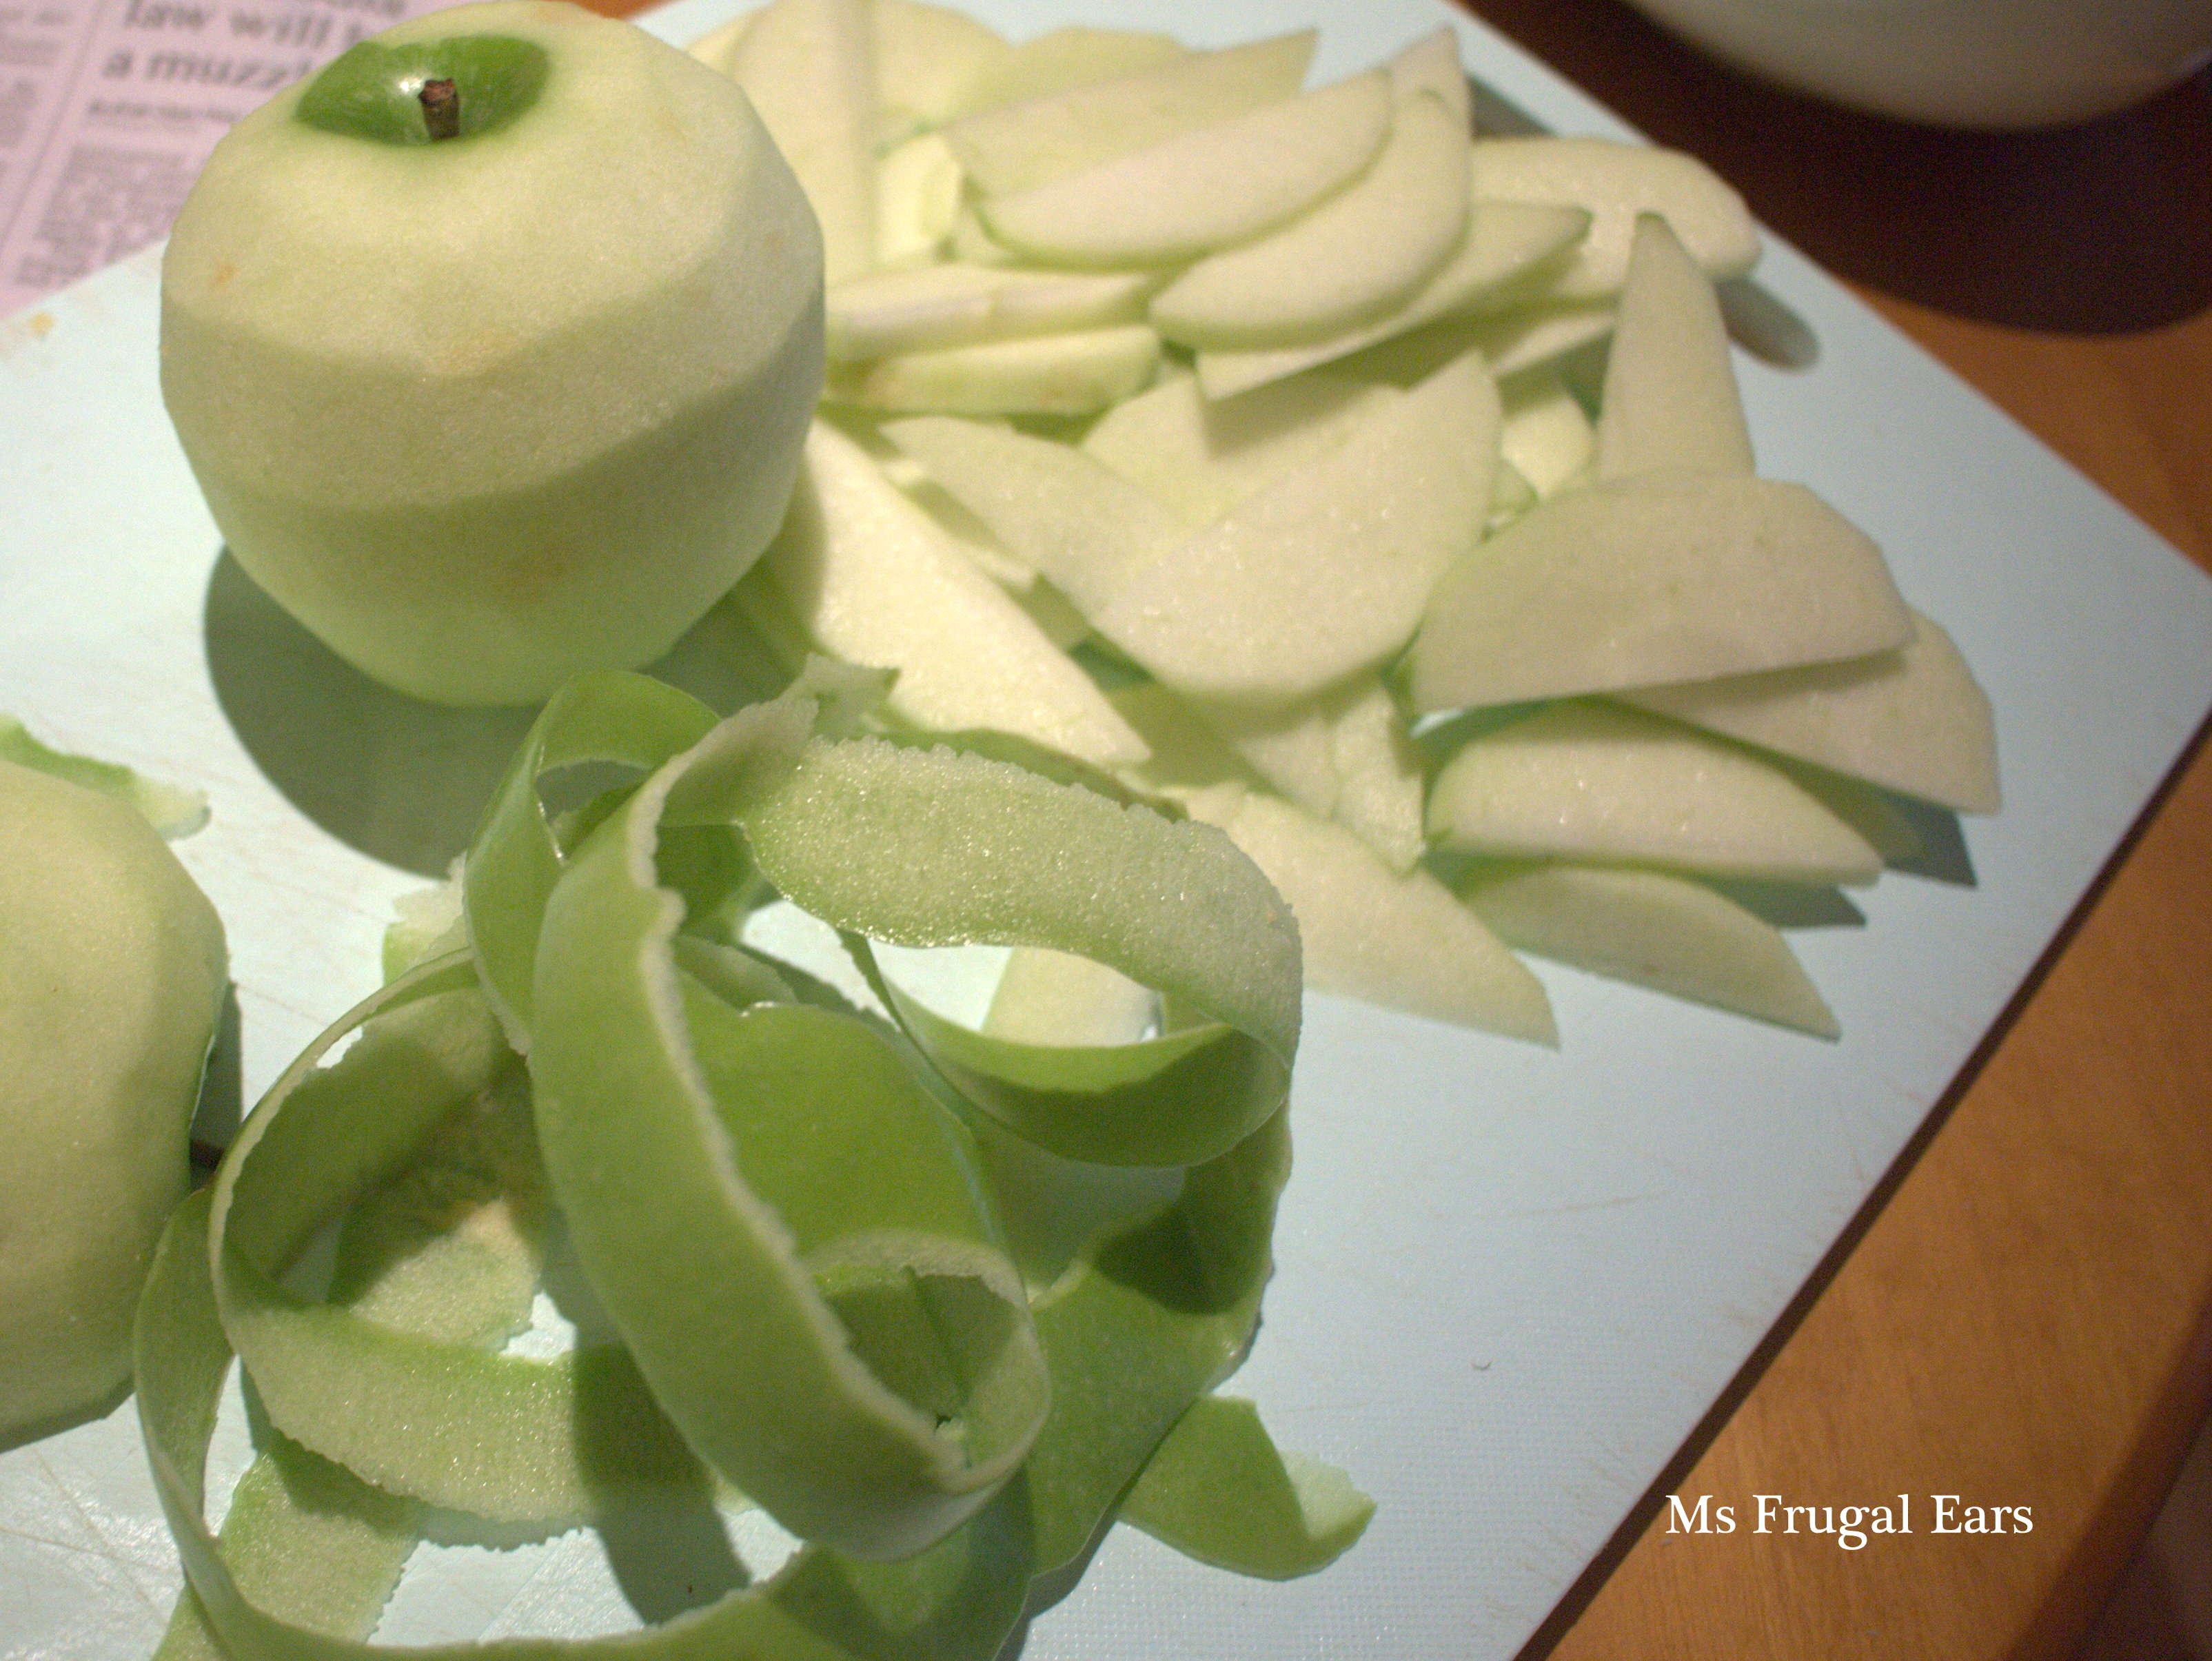 Peeling granny smith apples